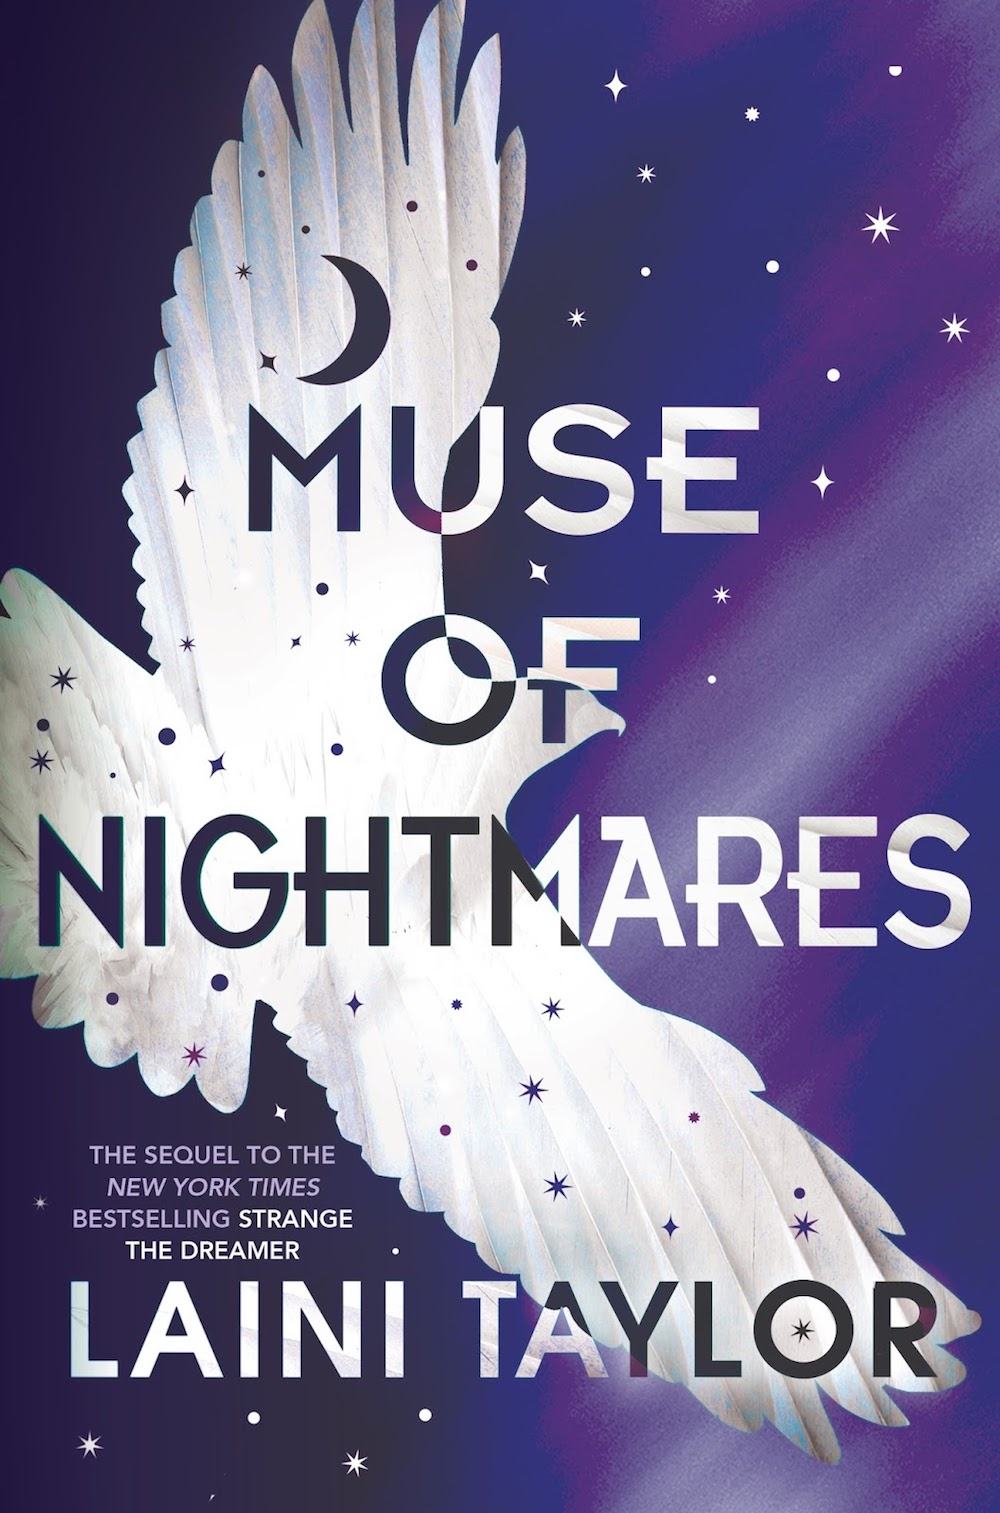 Muse of Nightmares' by Laini Taylor is nothing short of a dream